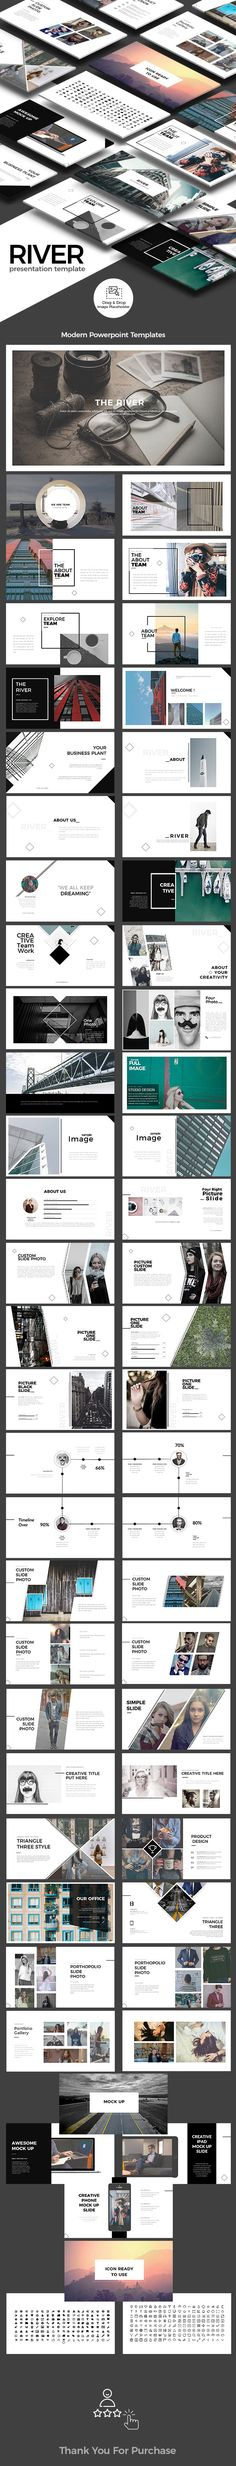 River - PowerPoint Presentation Template